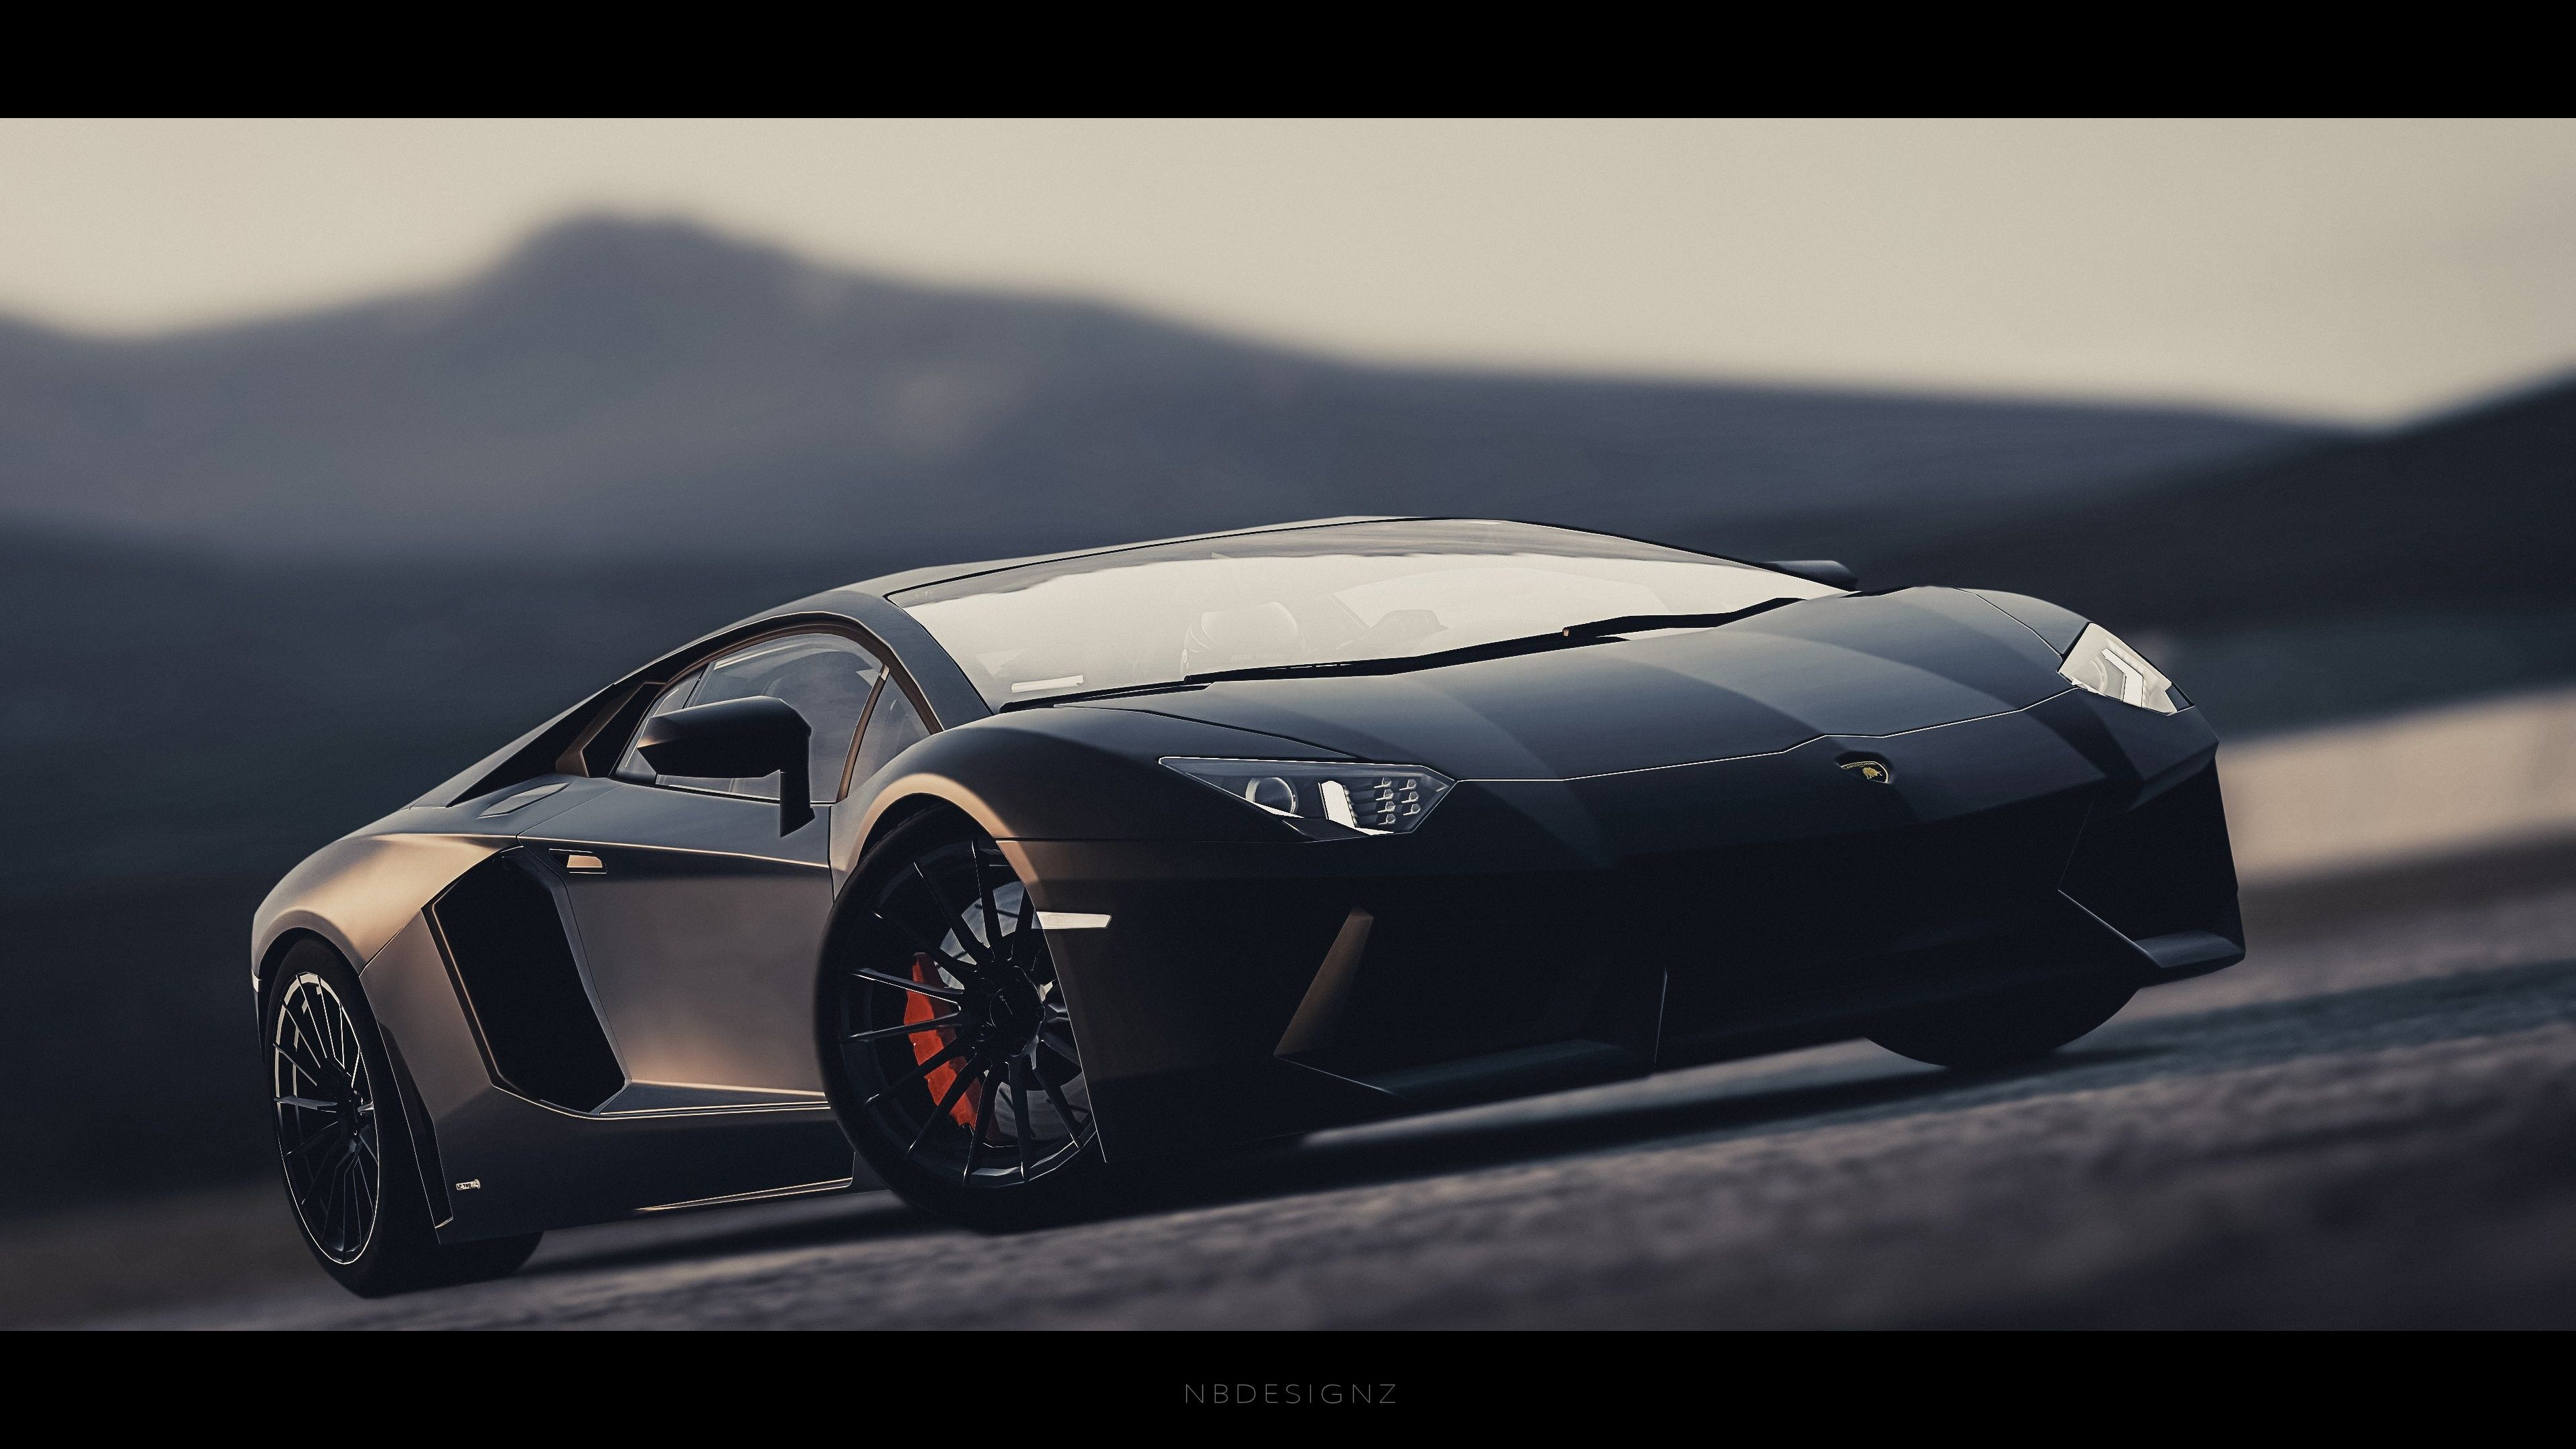 #4k Lamborghini Aventador Hd Wallpaper (3840x2160)